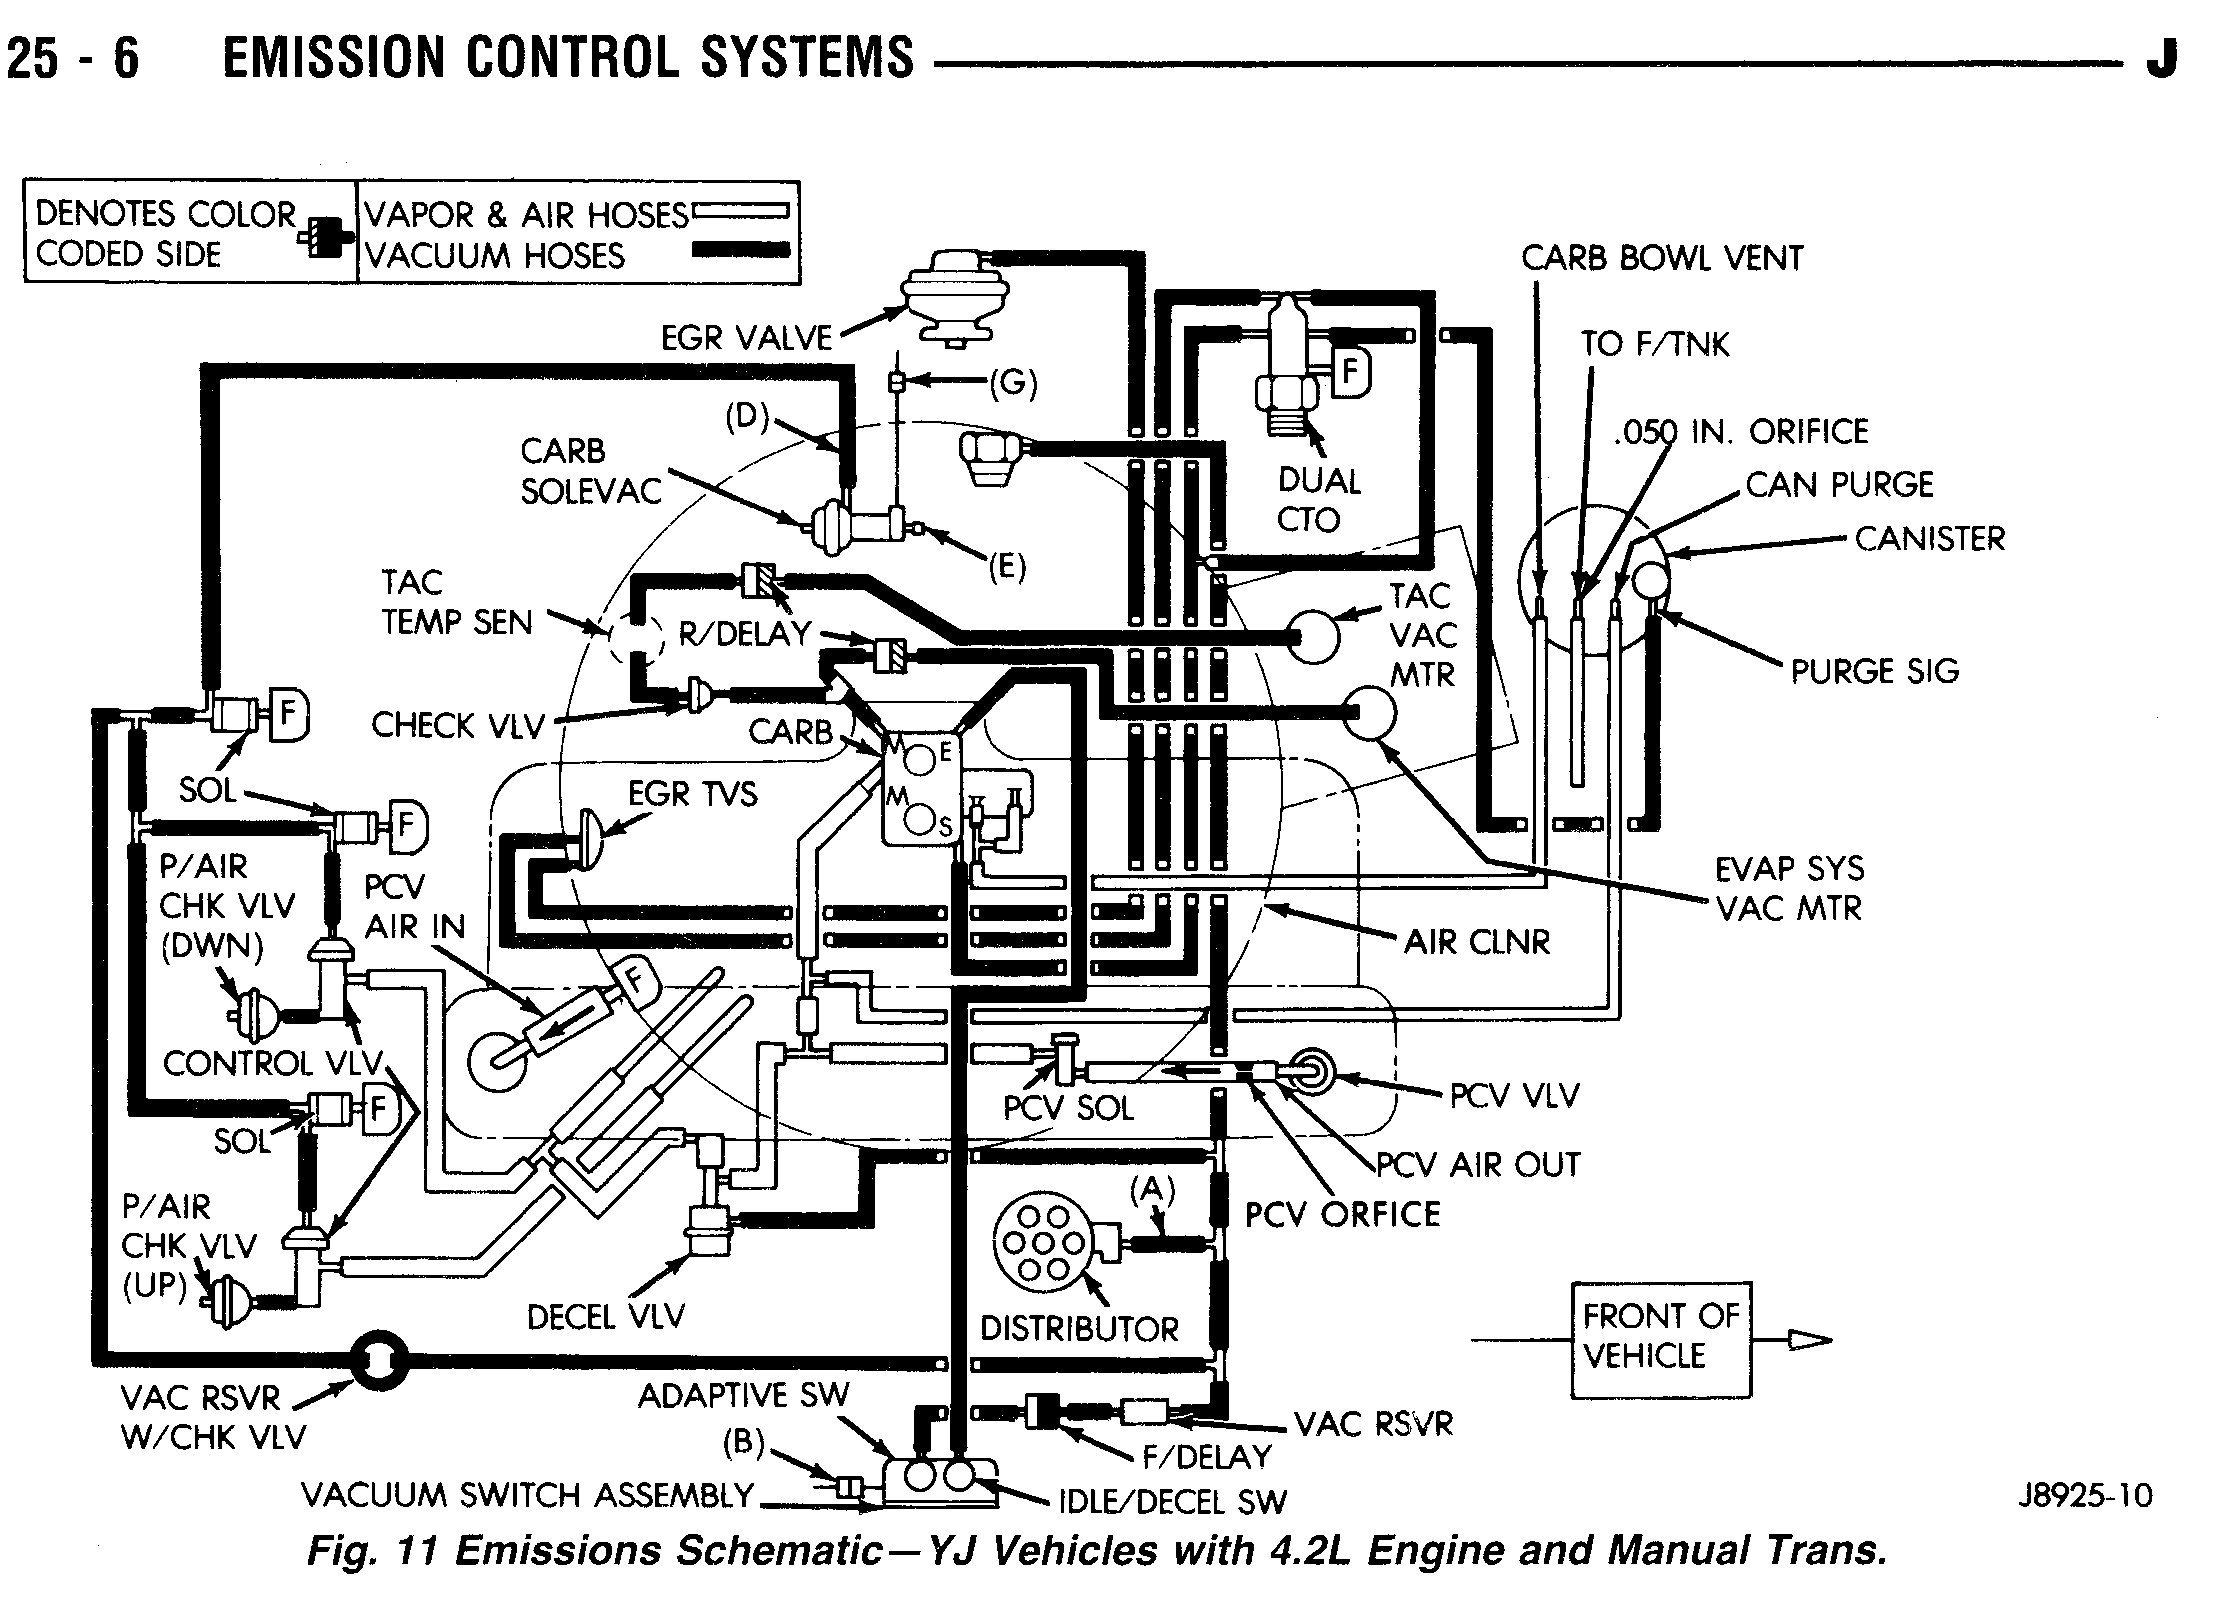 yj wiring harness diagram wiring diagram data oreo 1994 Jeep Cherokee Wiring Schematics jeep wrangler yj hardtop wiring harness diagram wiring diagram jeep wrangler stereo wiring diagram yj wiring harness diagram